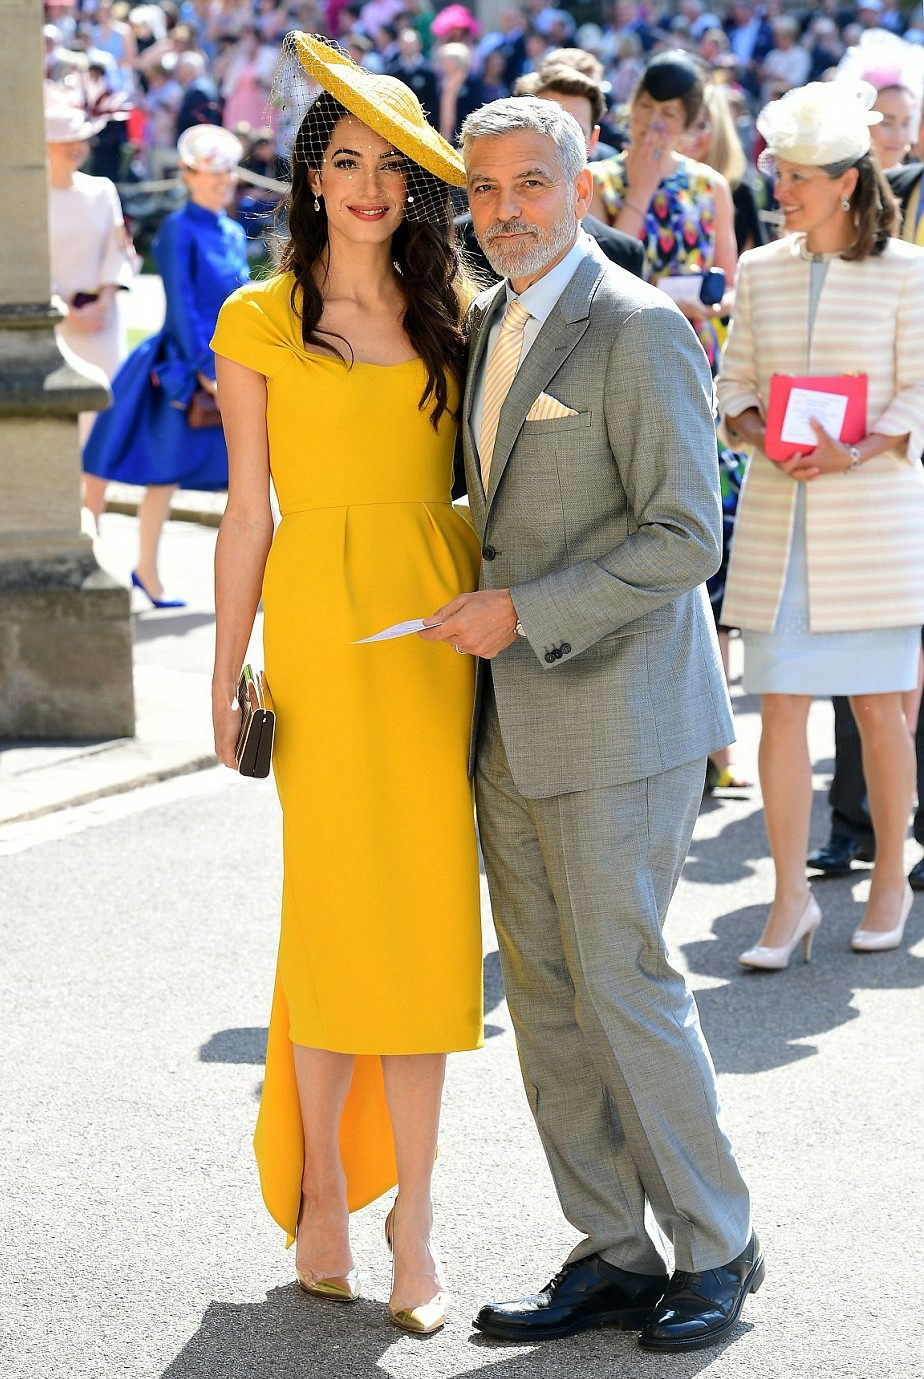 IMG_20180519_150547_706 Entertainment Gists Events Foreign General News Lifestyle & Fashion News Photos Relationships World news